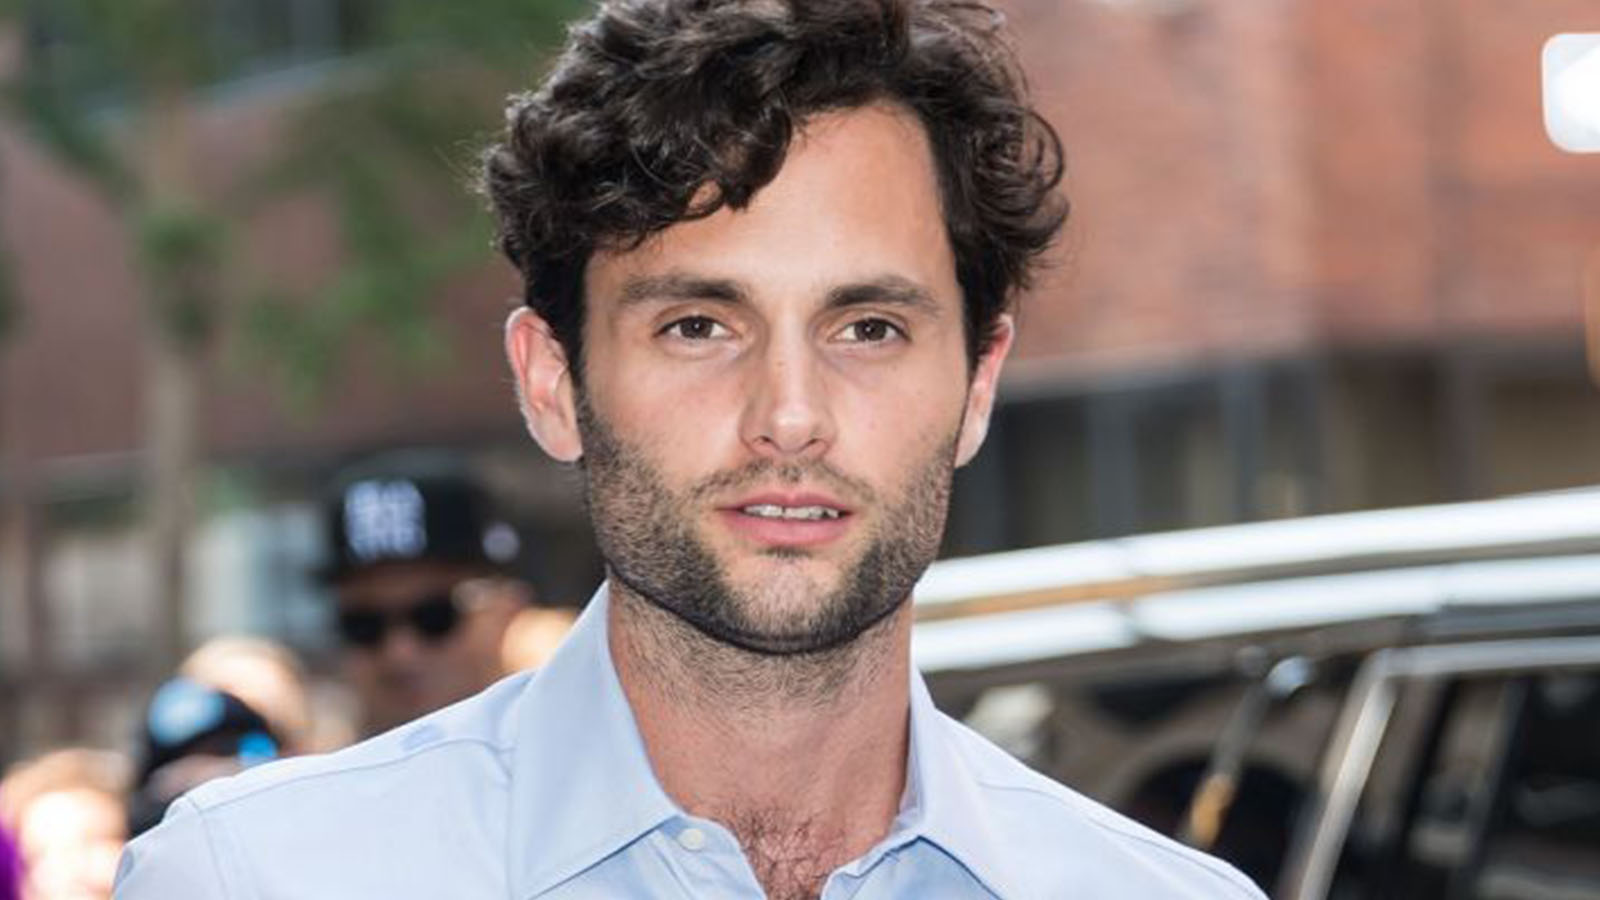 Penn Badgley Biyografi